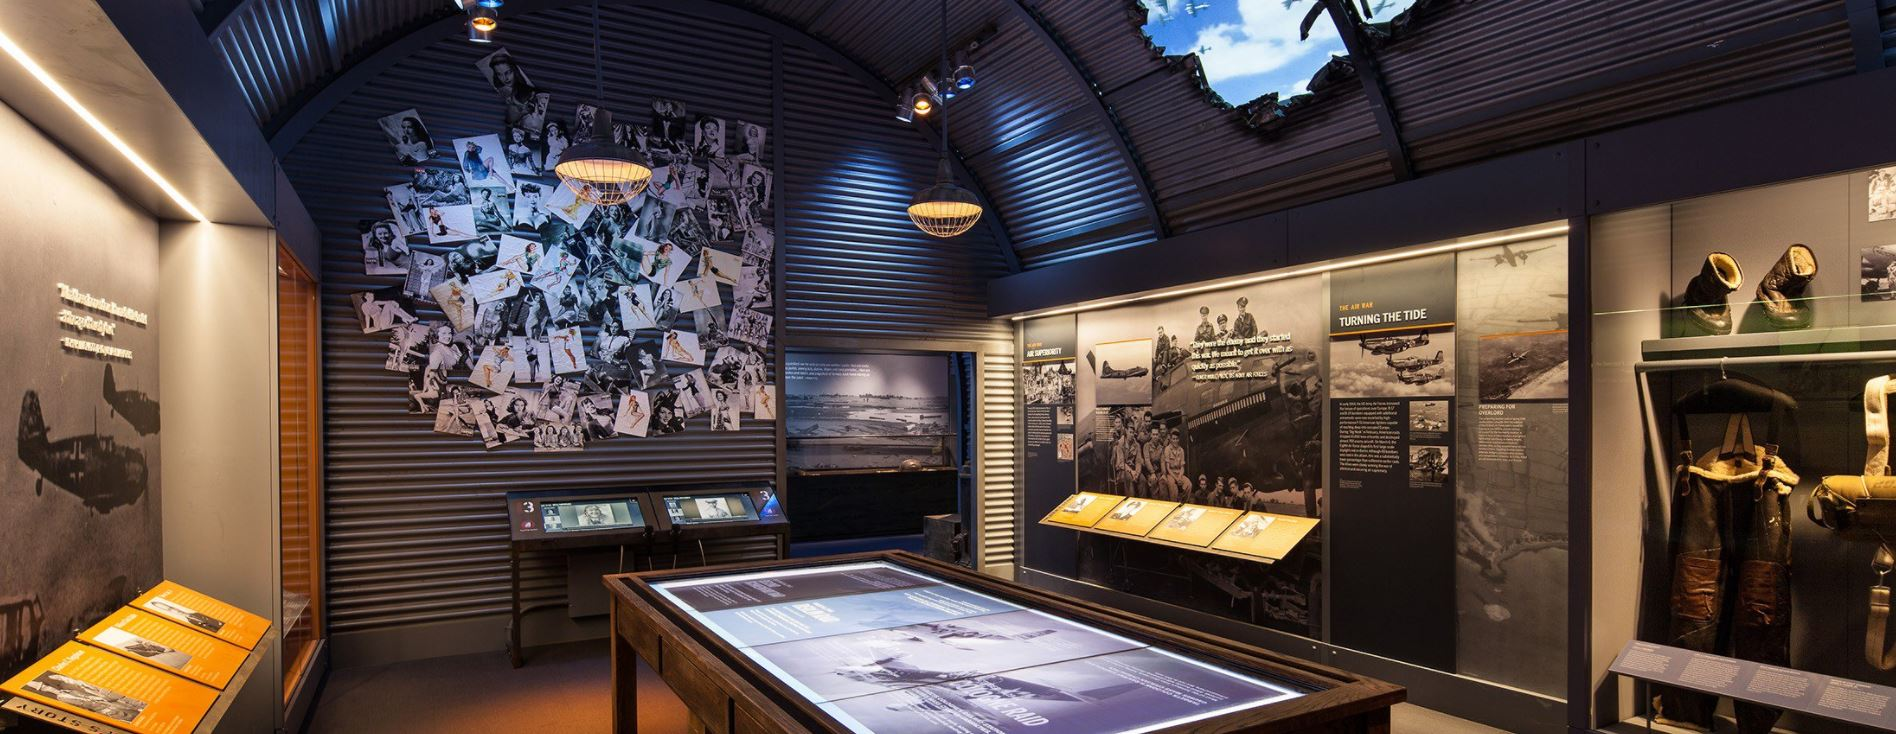 The National WWII Museum in New Orleans, Louisiana, is one of Gallagher & Associates recent successful projects.